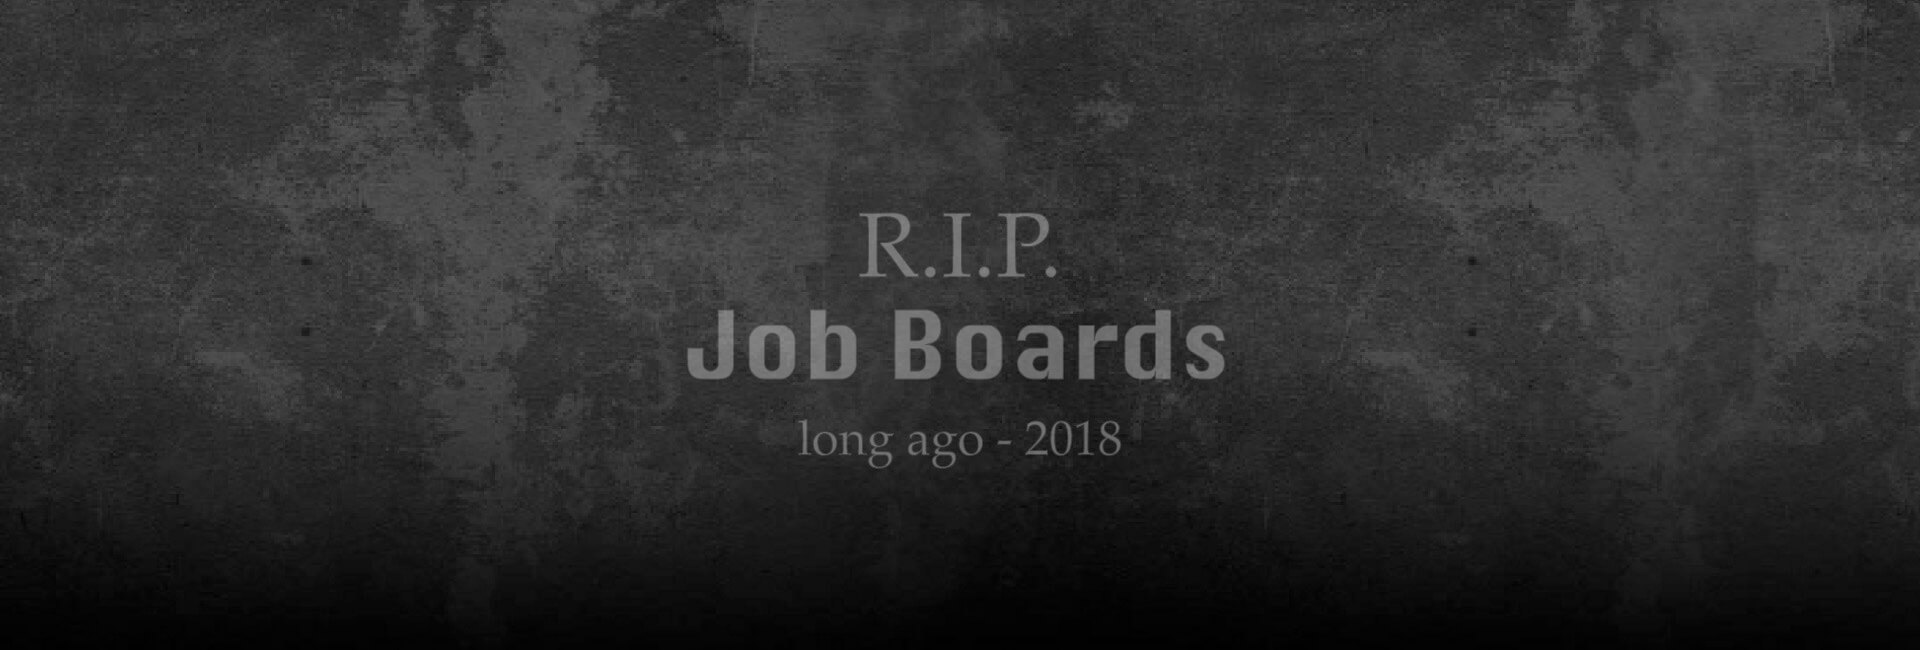 Are Job Boards About To Become Extinct?